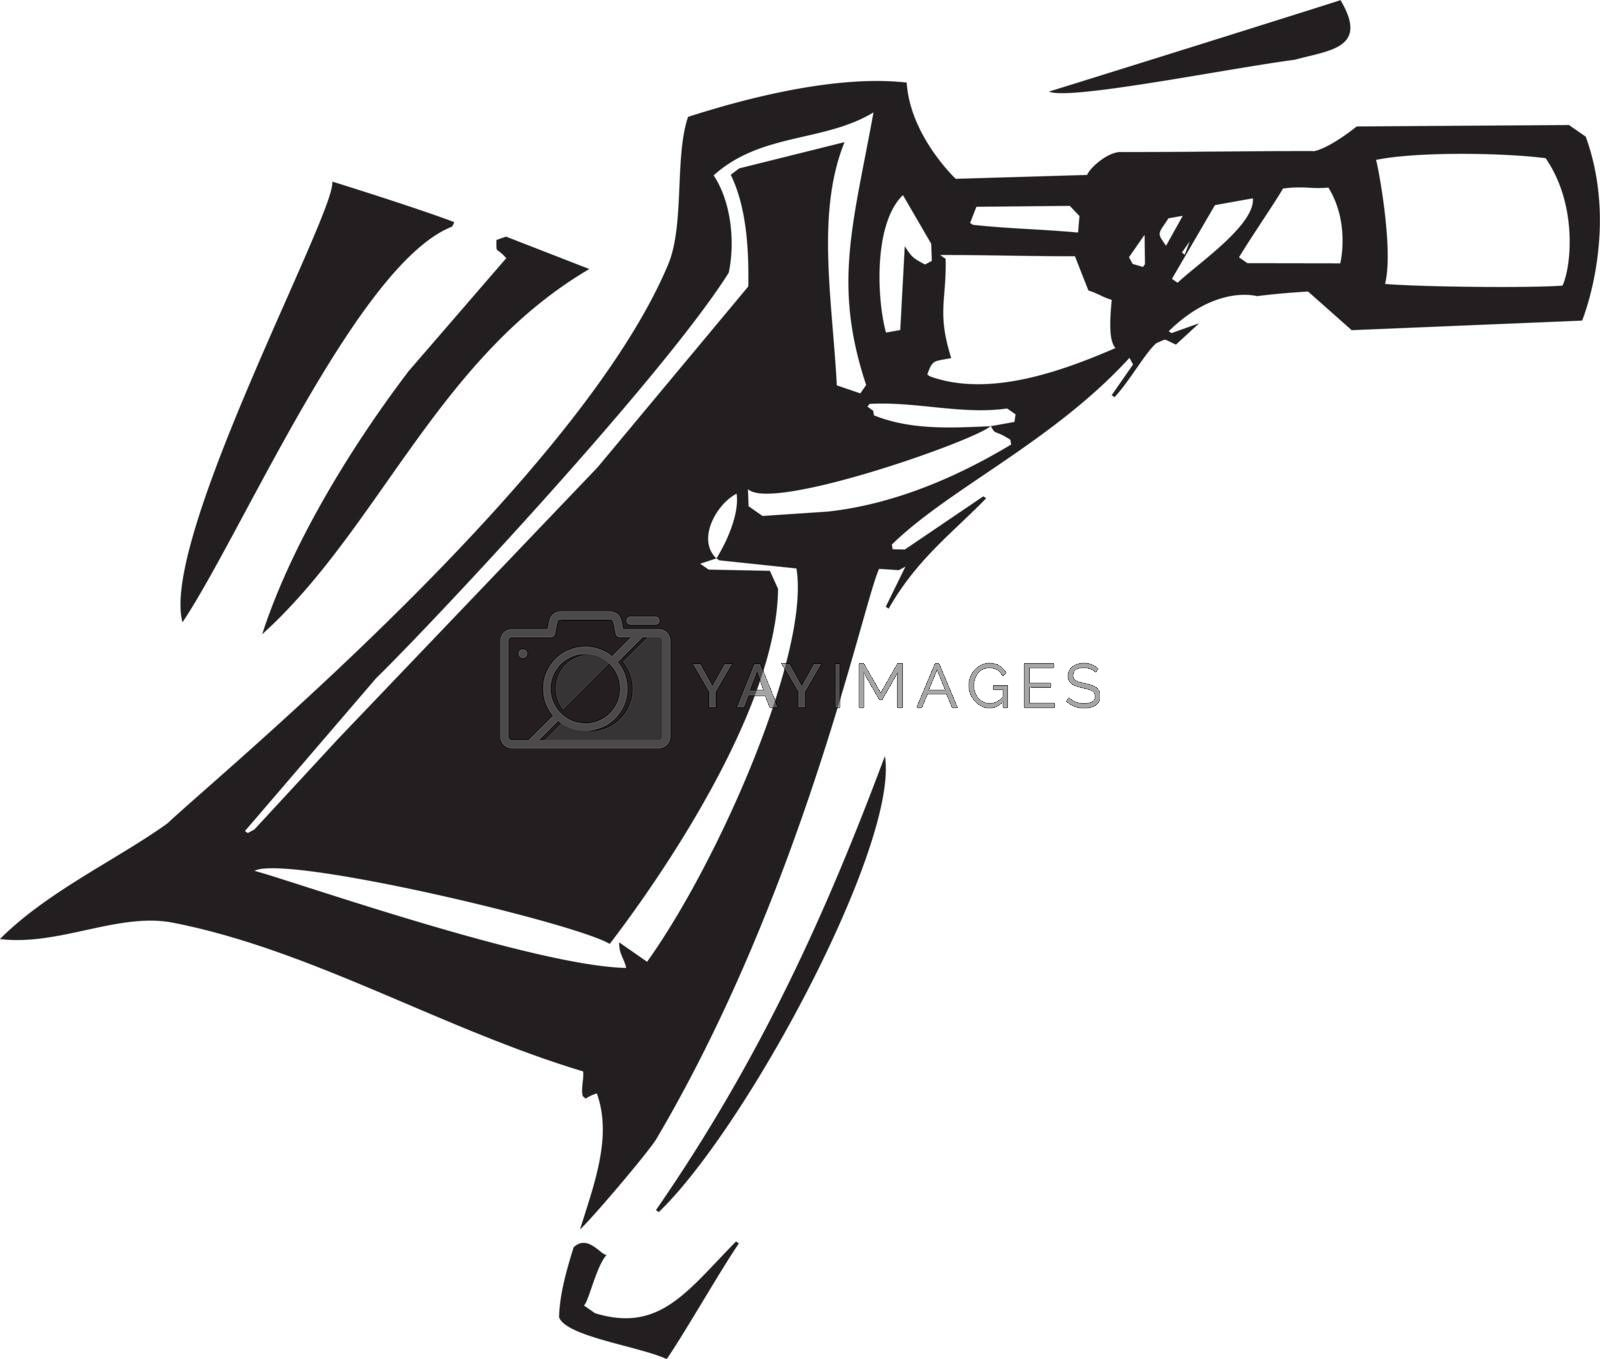 Woodcut expressionist style image of a spy with a telescope.